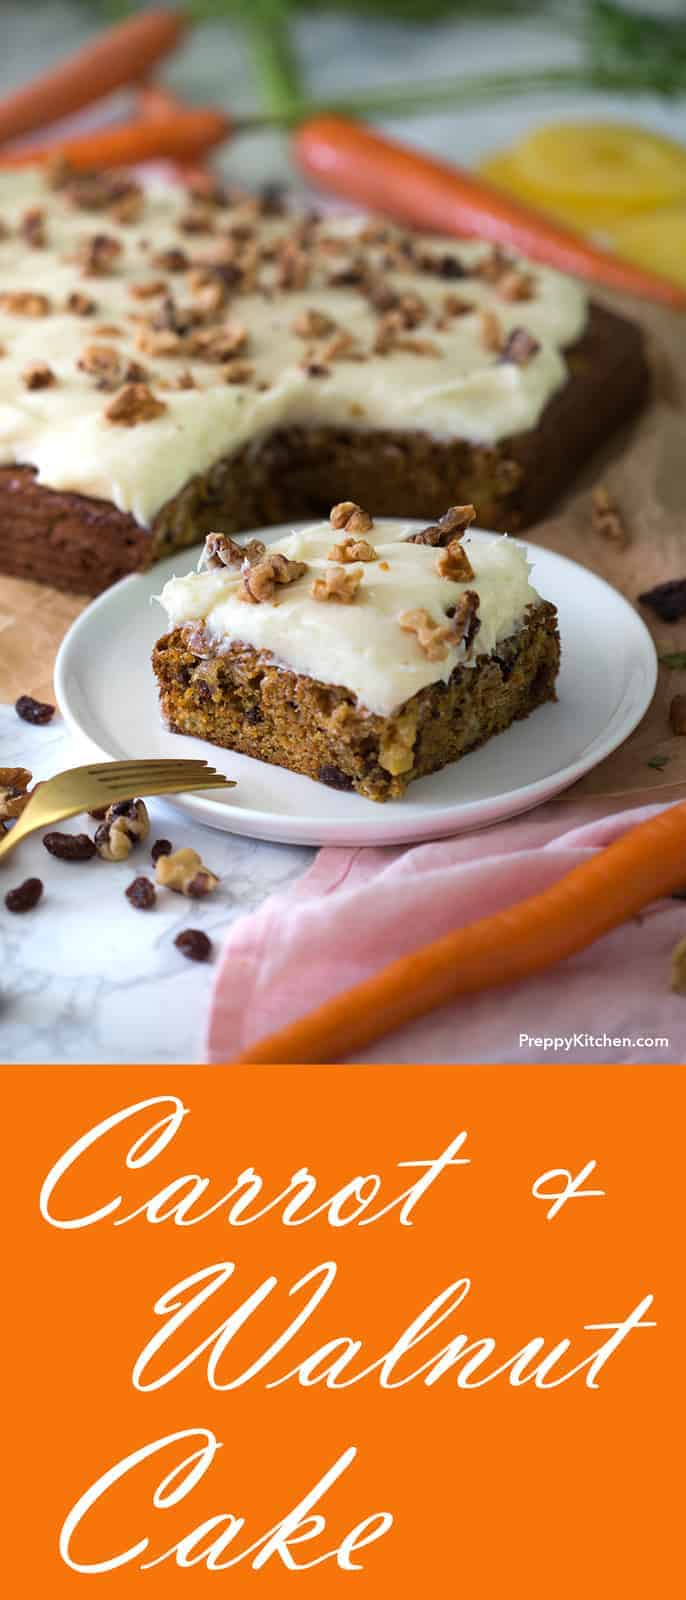 A moist and delicious carrot sheet cake topped with amazing cream cheese frosting. Adding my favorite spices to the batter really took this cake up a notch!